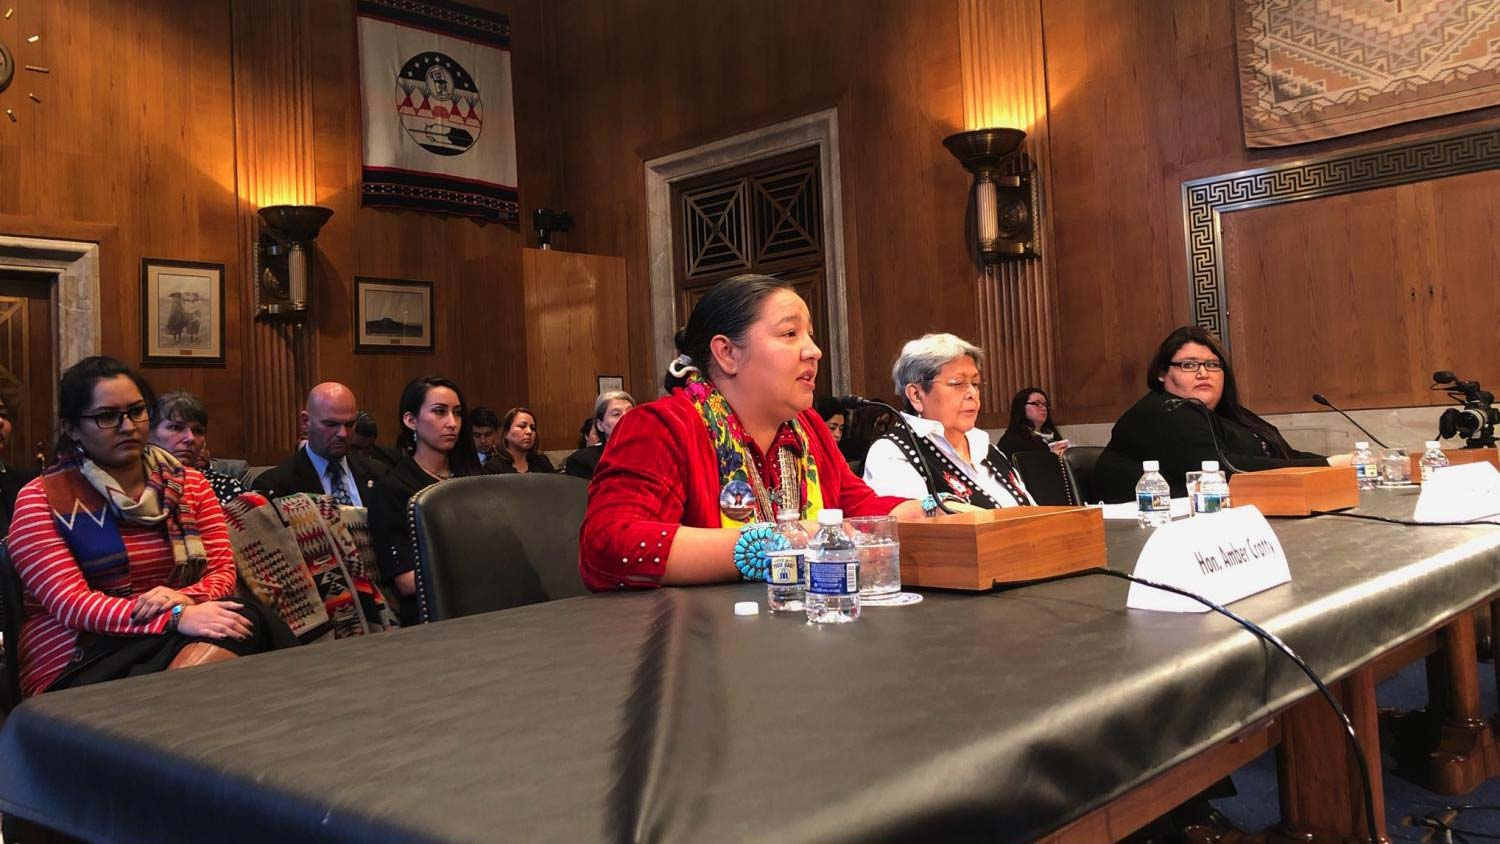 Navajo Council Delegate Amber Kanazbah Crotty sits alongside indigenous women giving testimony before the Senate Committee on Indian Affairs about missing and murdered indigenous people.